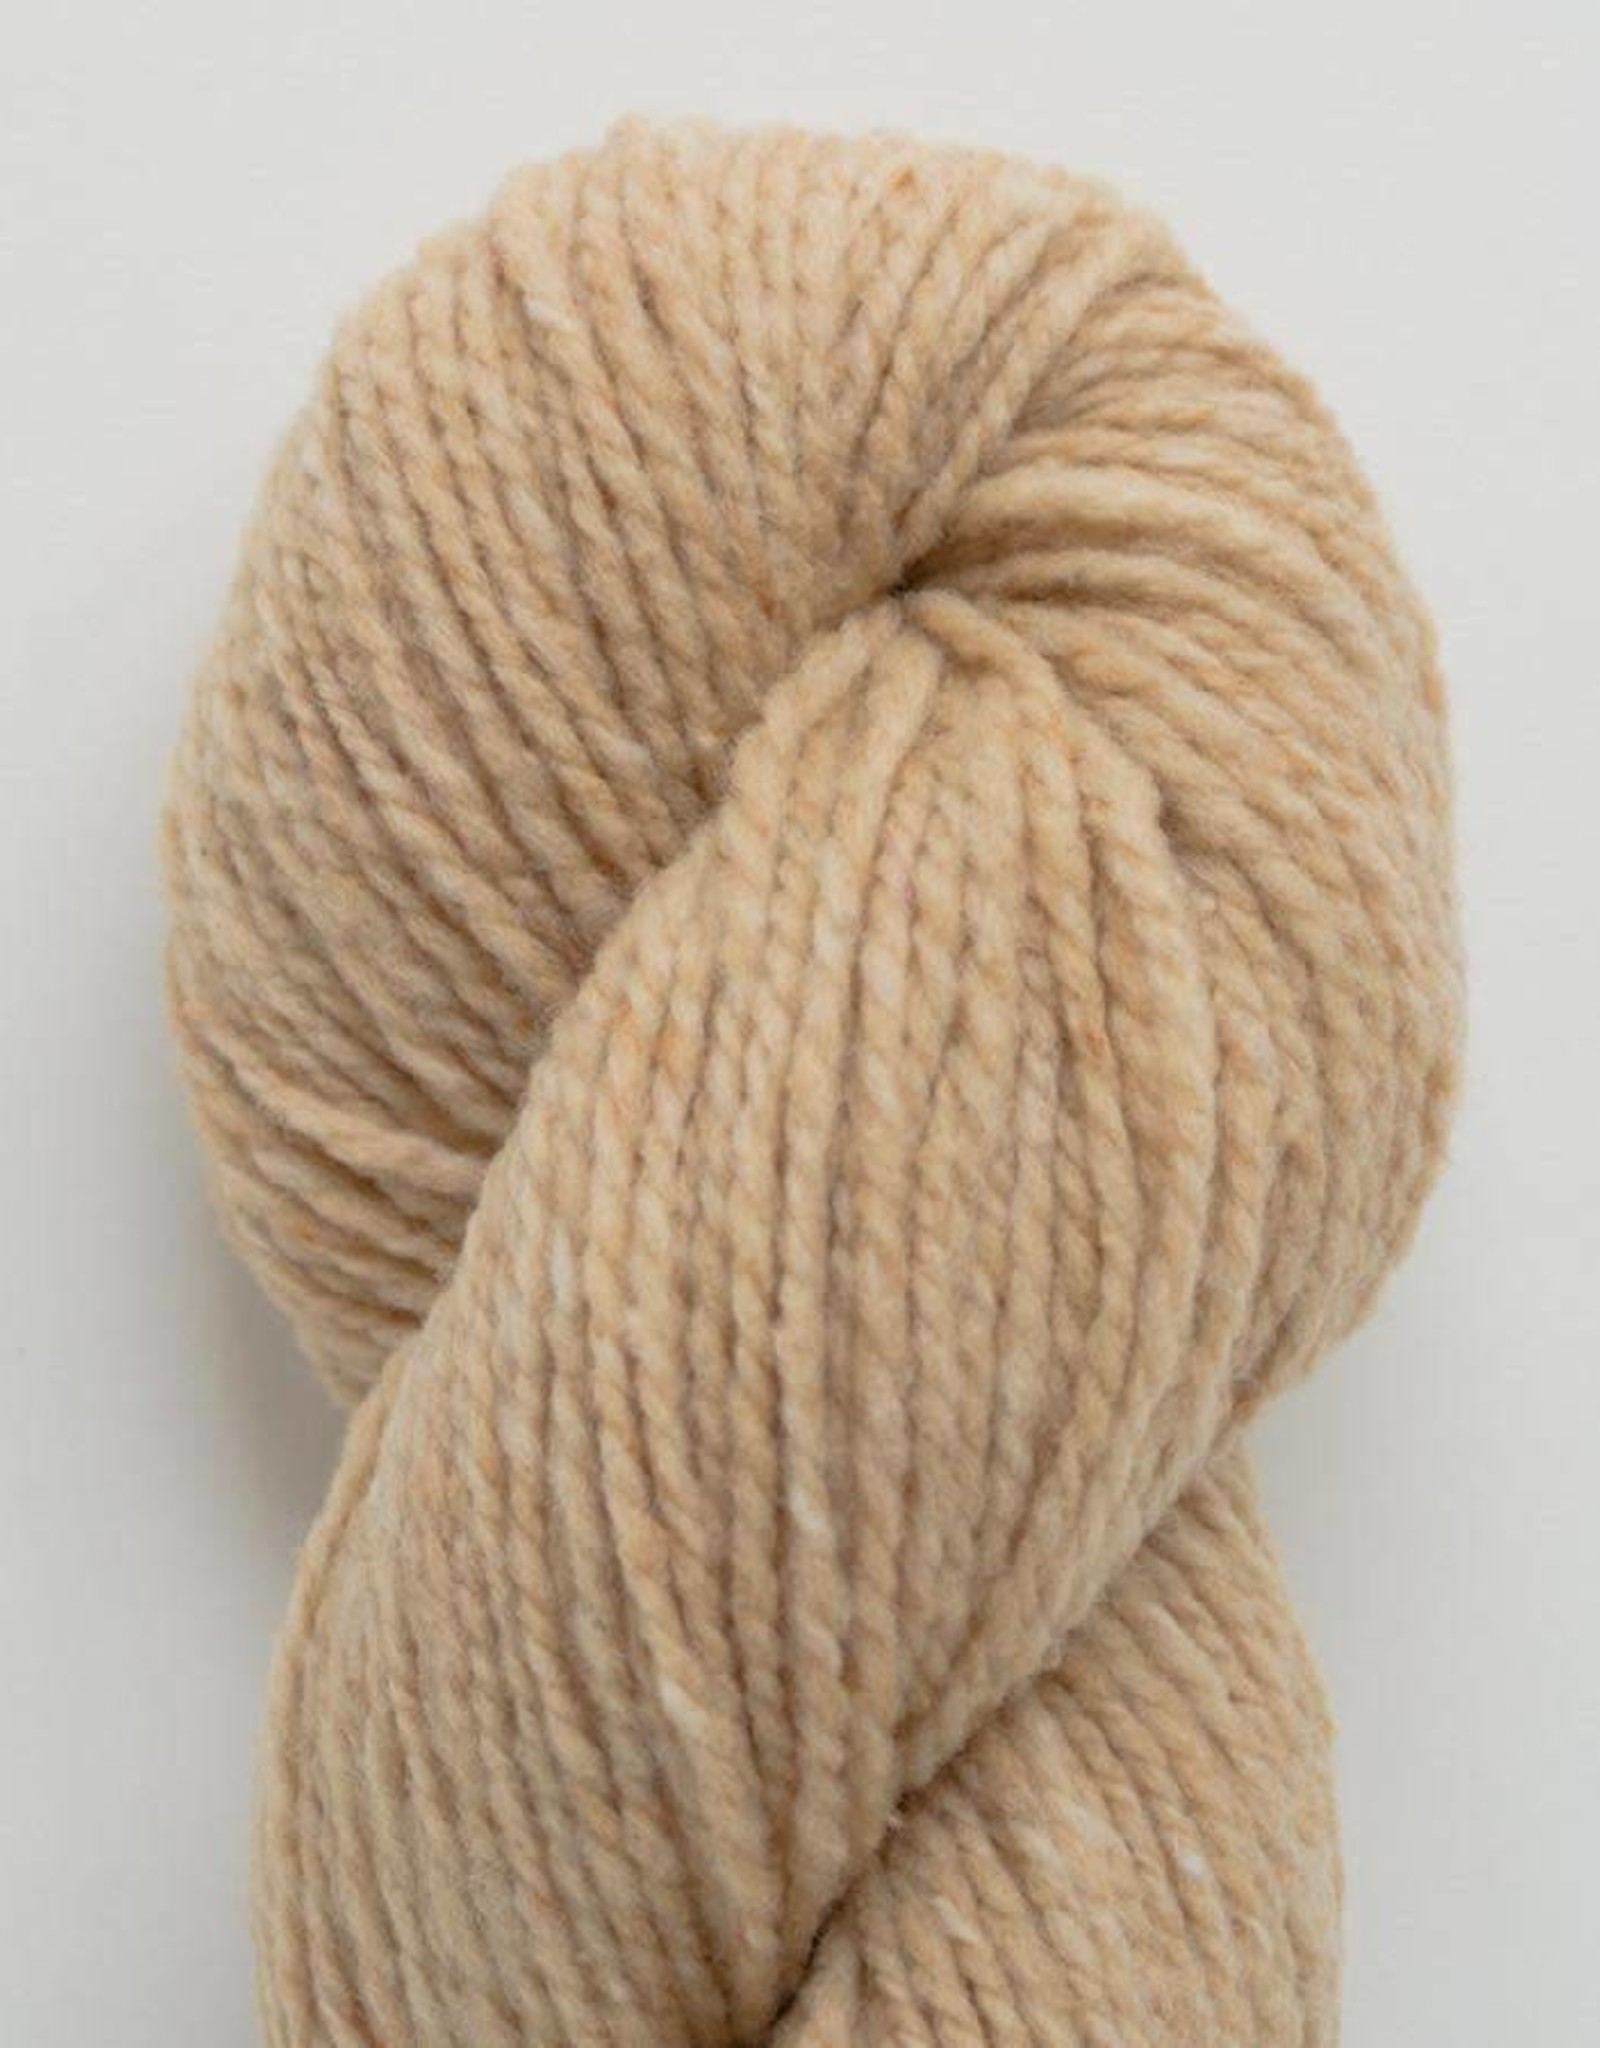 Brooklyn Tweed Shelter Tallow